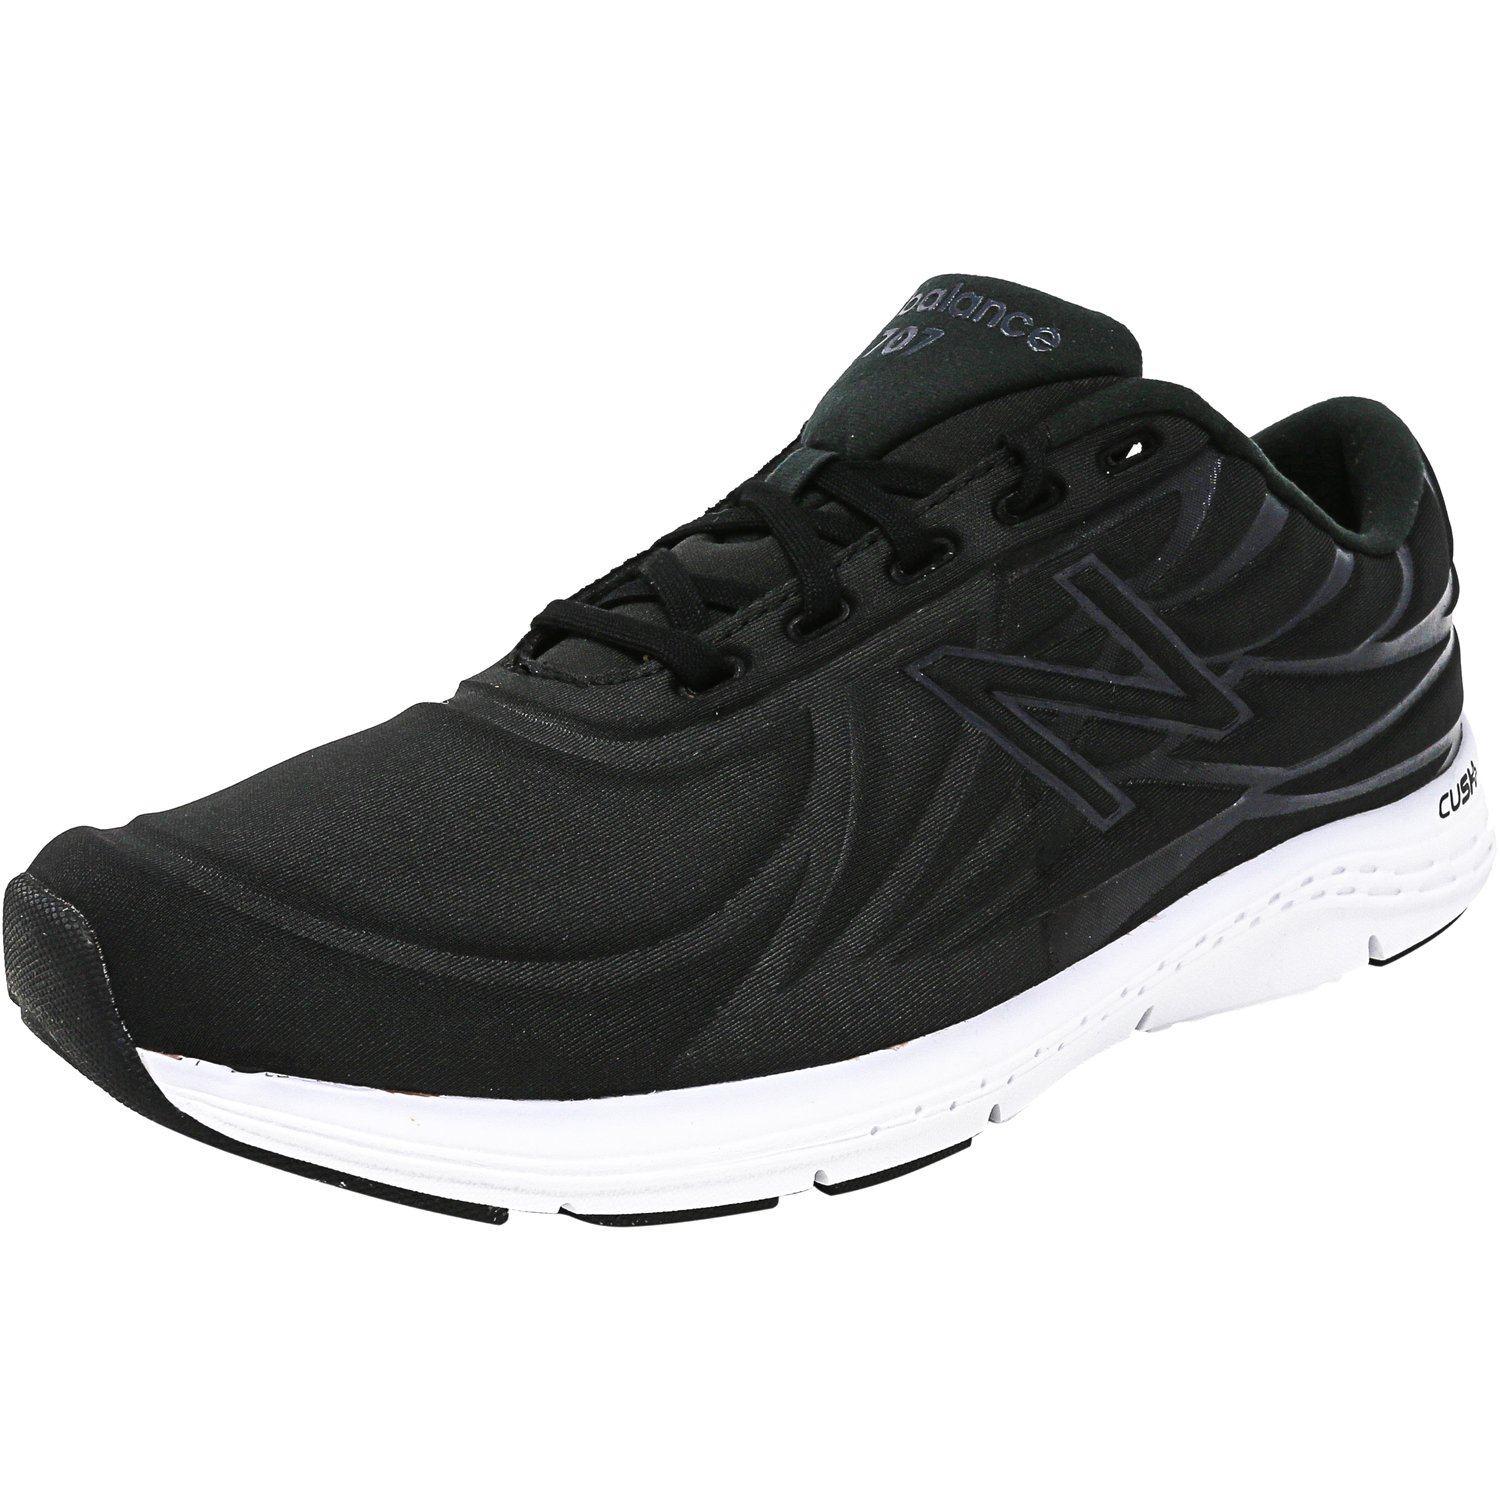 New Balance Women's Wf707 Bw Ankle-High Running Shoe - 10M